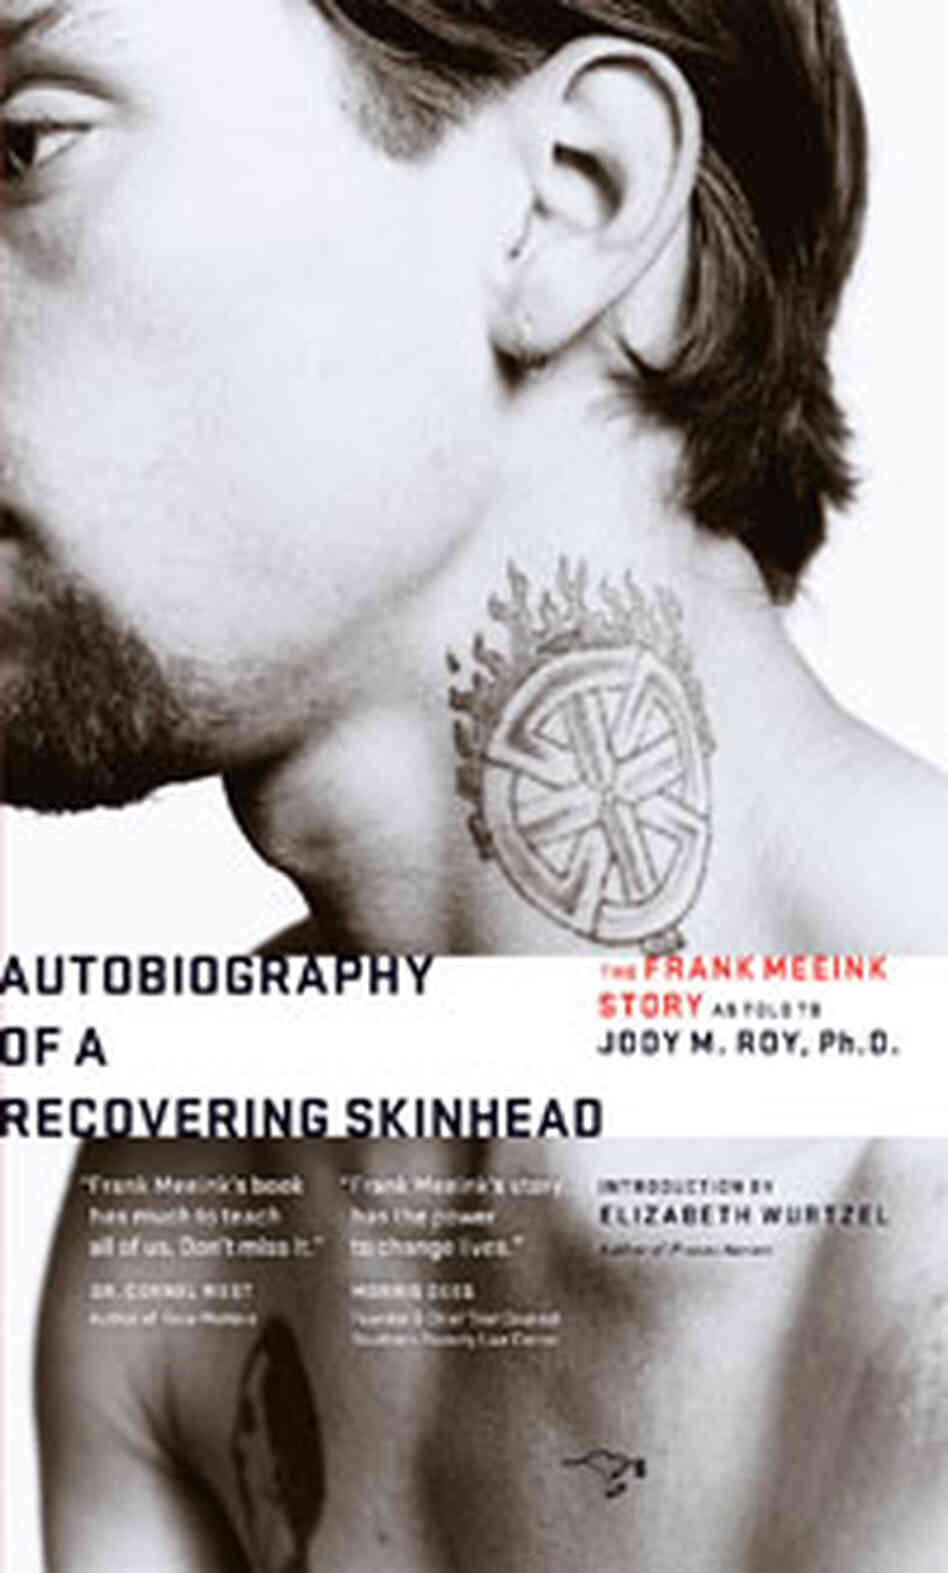 Autobiography of a Recovering Skinhead: Cover detail